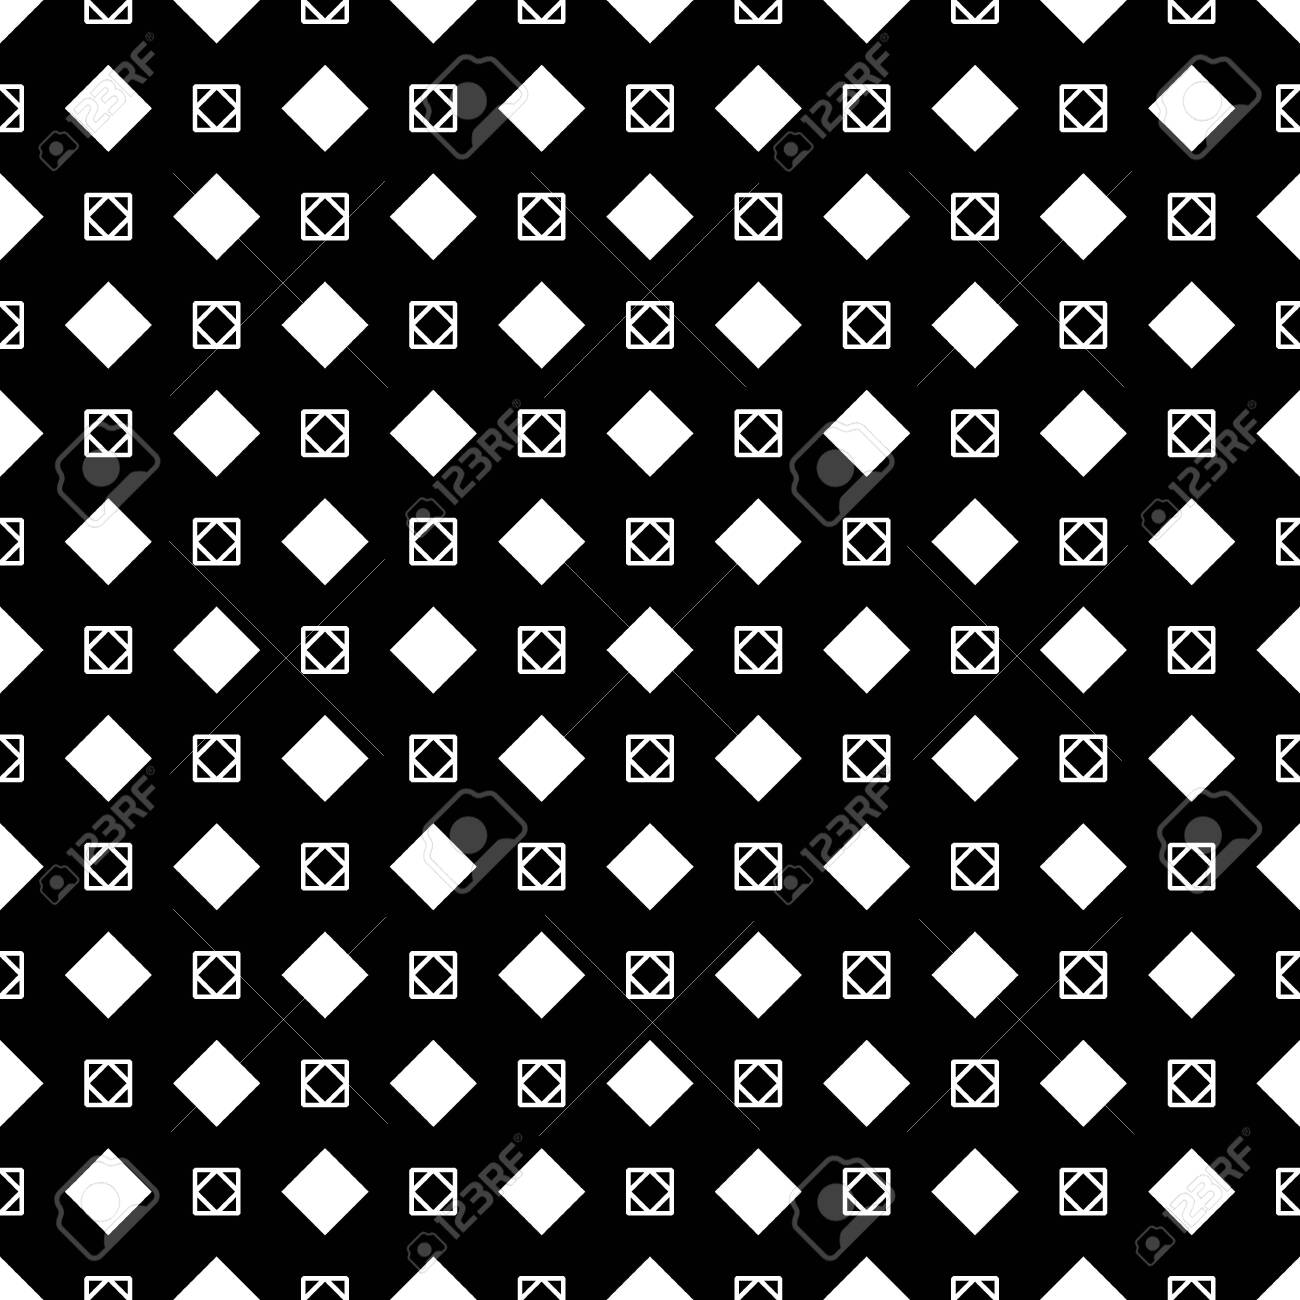 Rhombuses, squares on black background. Seamless surface pattern design with diamonds ornament. Checks wallpaper. Ethnic mosaic motif. Digital paper for textile print, page fill, web designing. Vector - 154646886